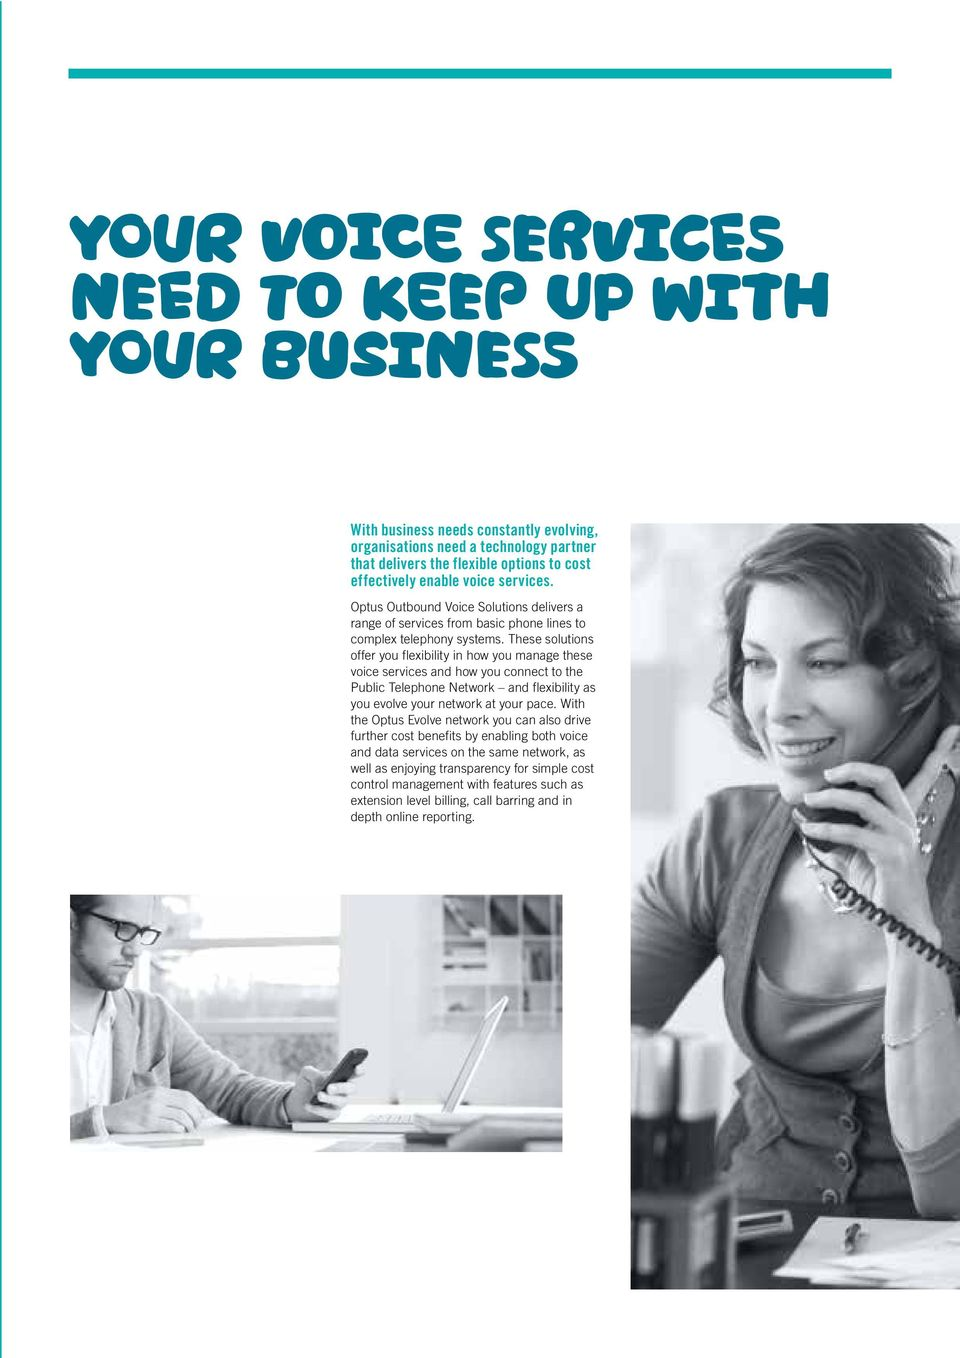 These solutions offer you flexibility in how you manage these voice services and how you connect to the Public Telephone Network and flexibility as you evolve your network at your pace.